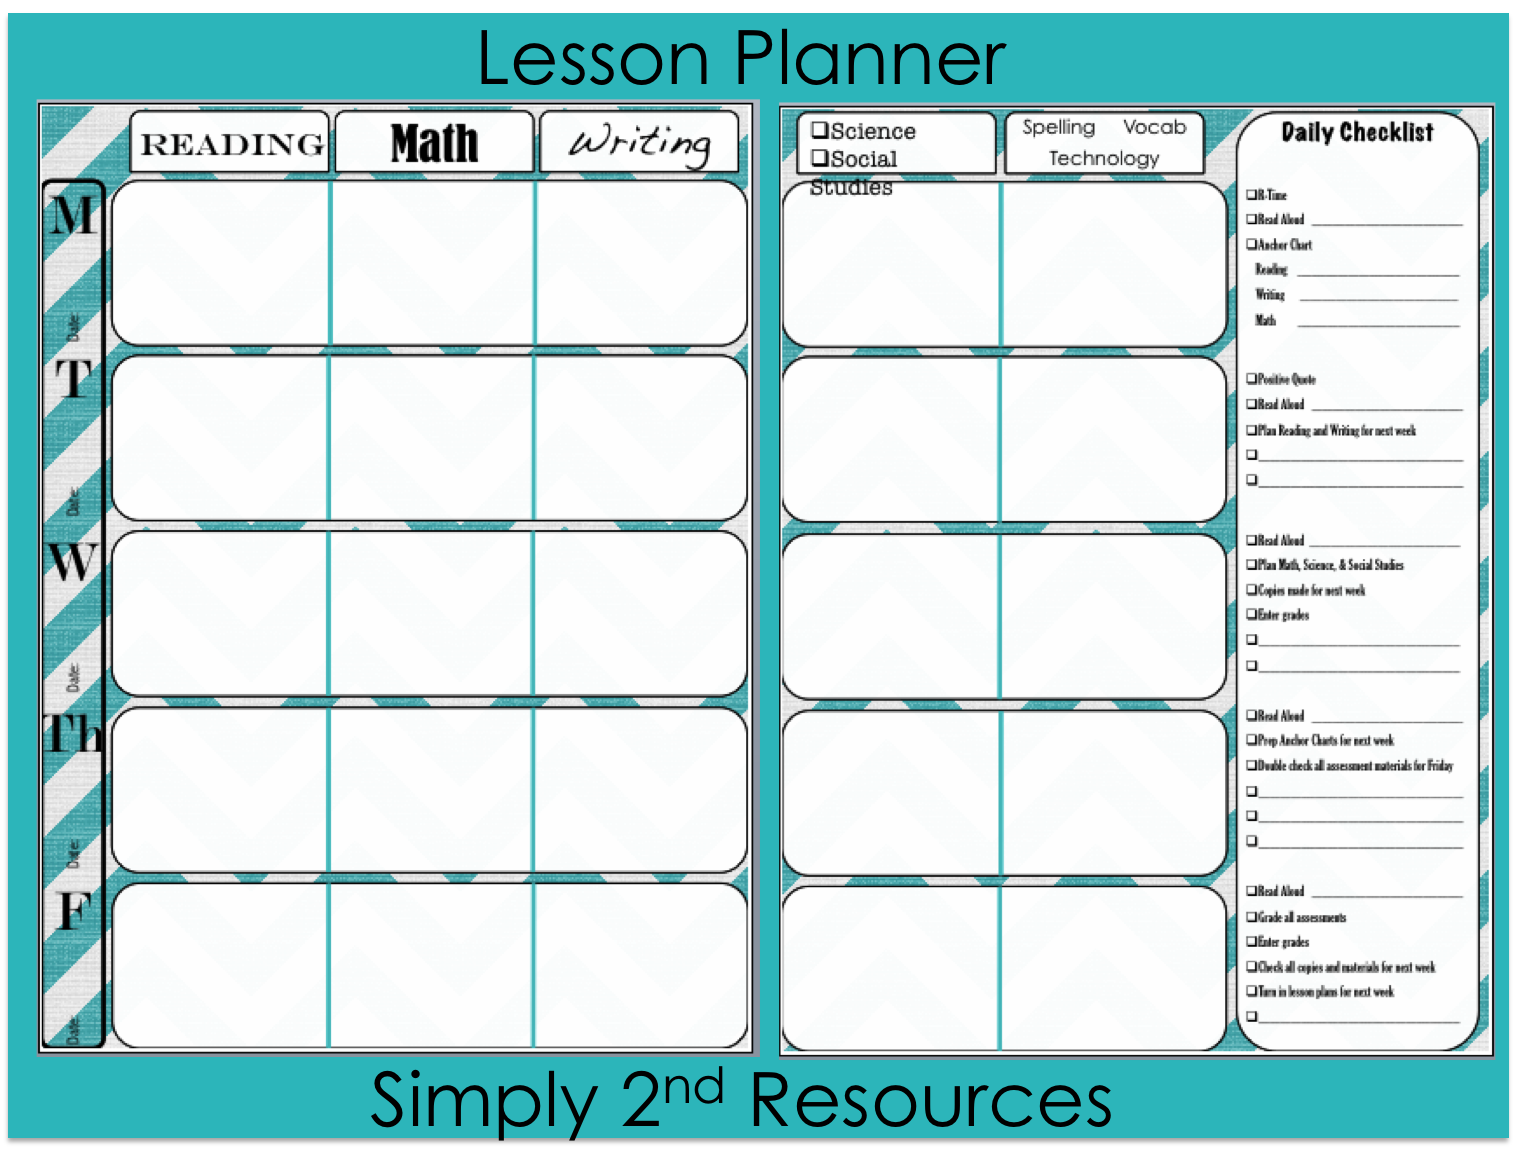 Marvelous Simply 2nd Resources: Free Lesson Plan Template On Free Lesson Plan Format